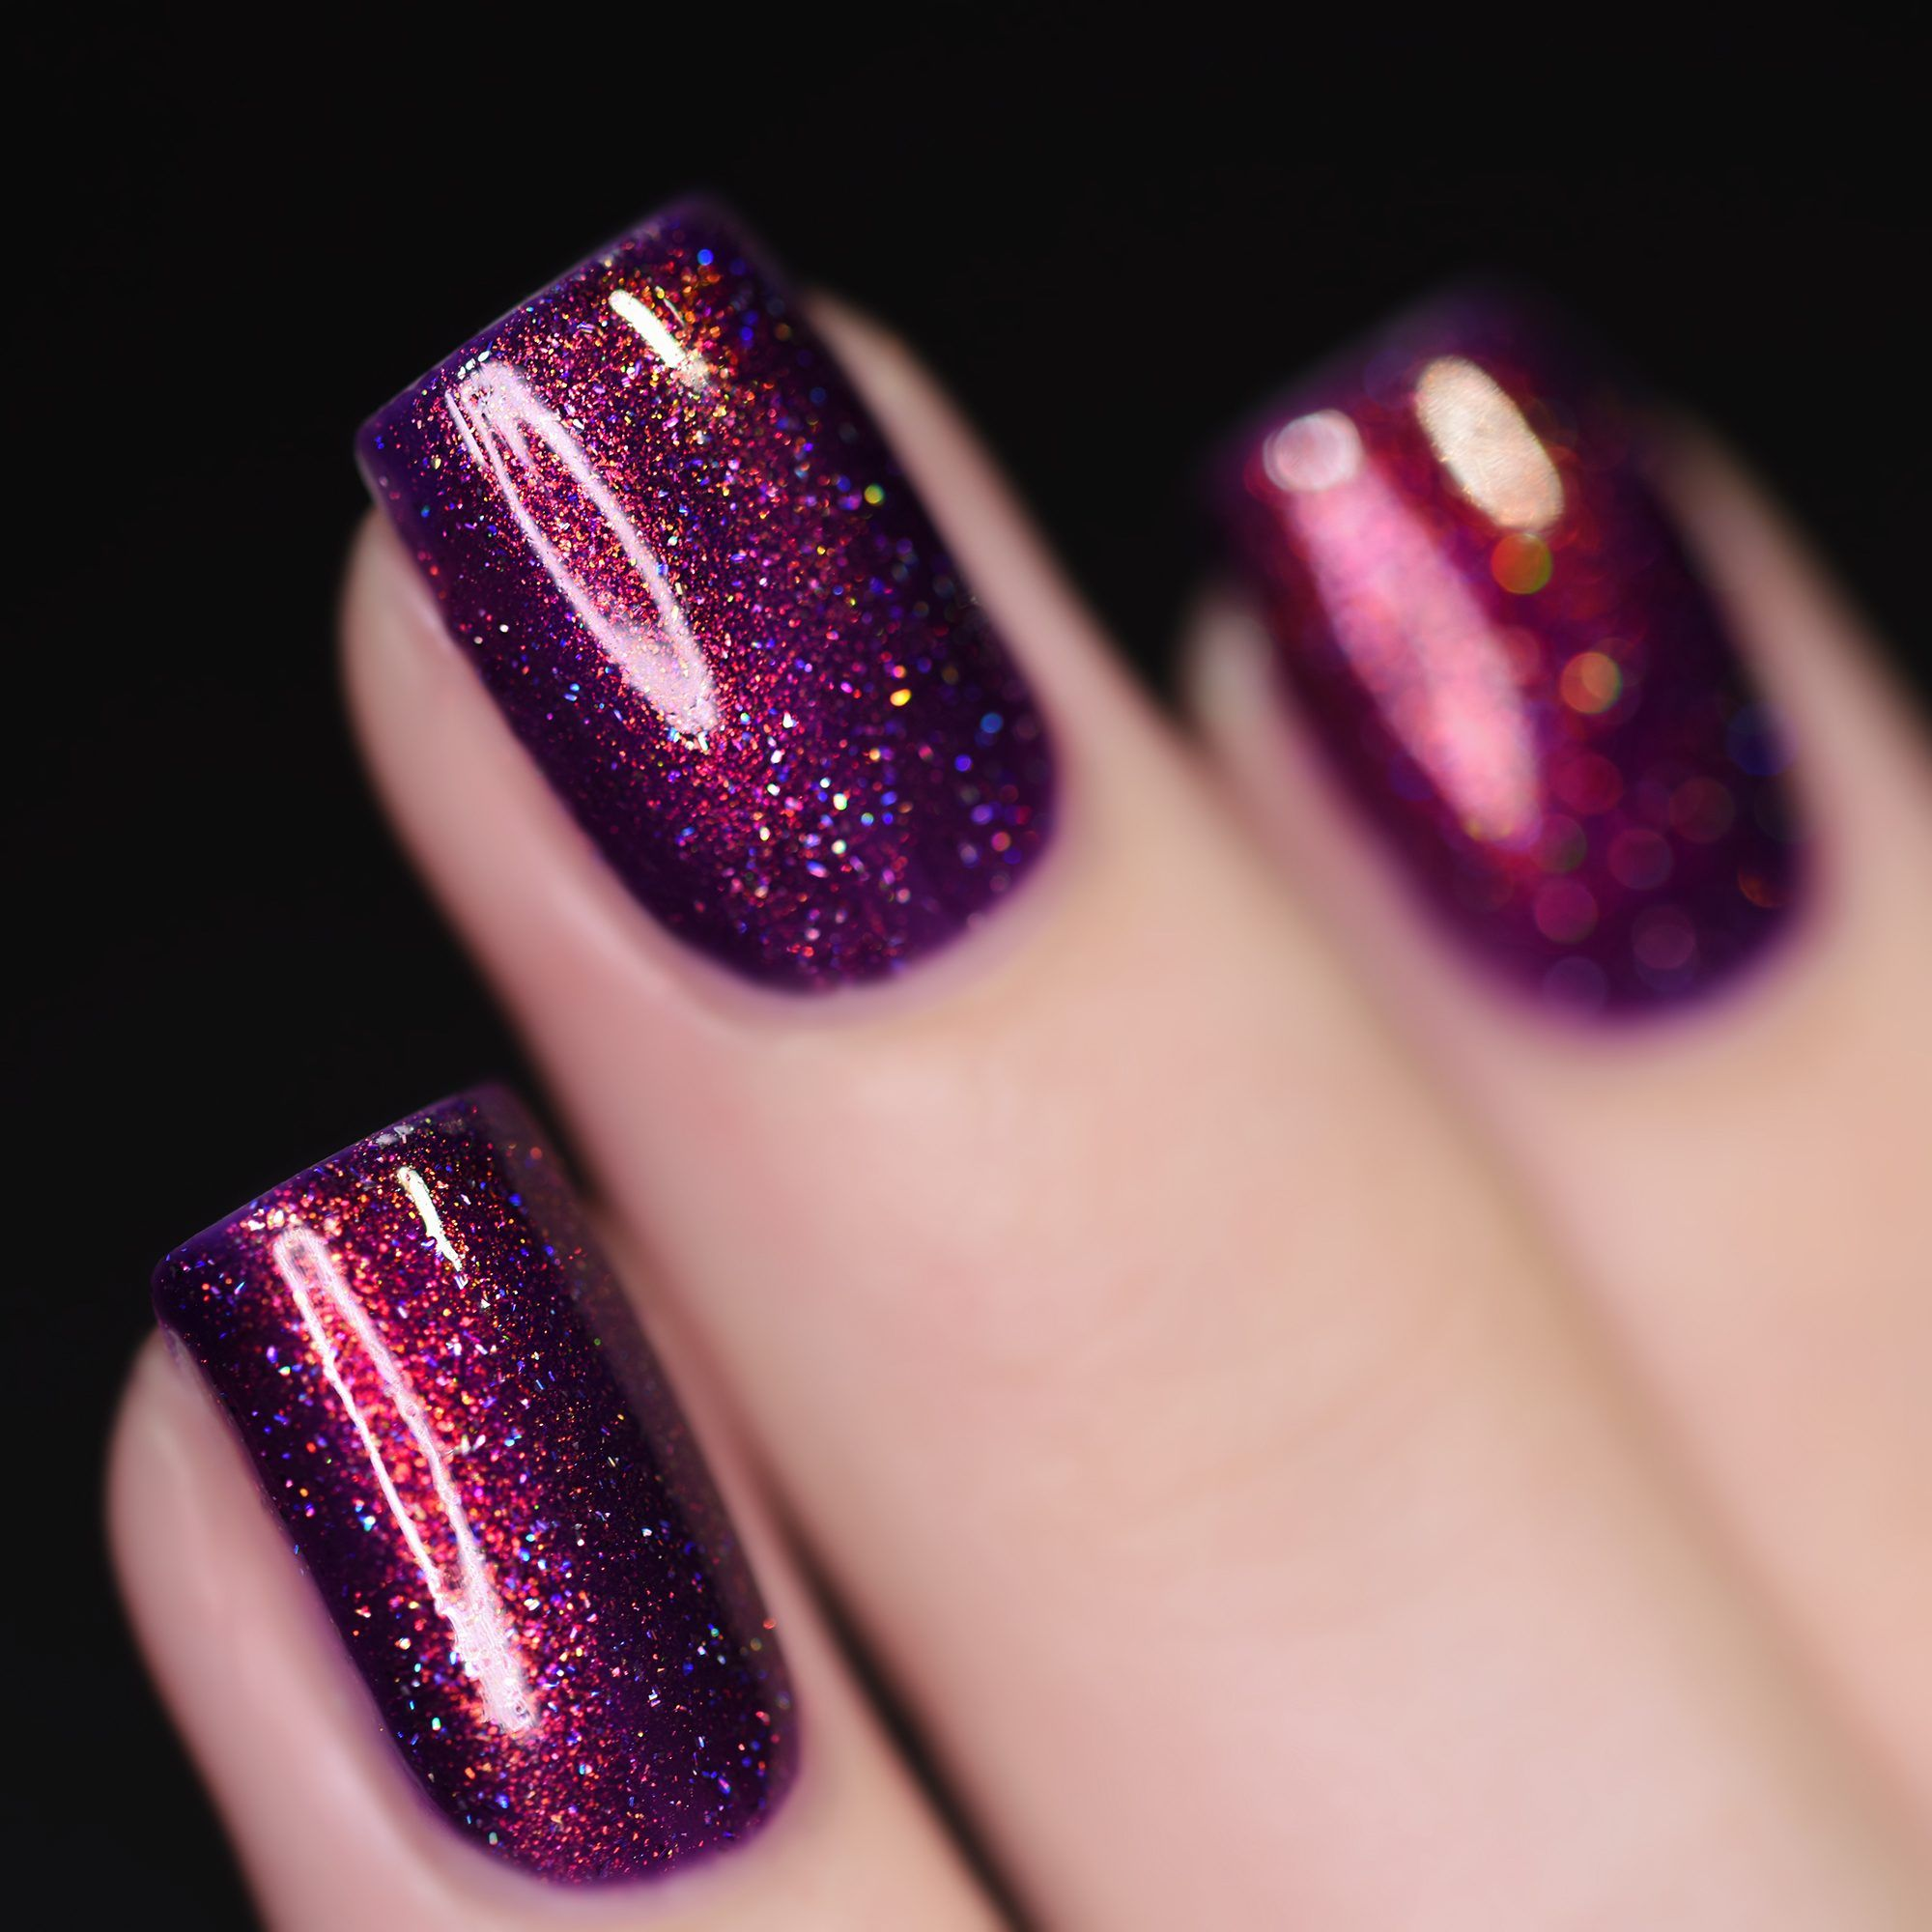 Ava - Vivid Violet Holographic Nail Polish by ILNP